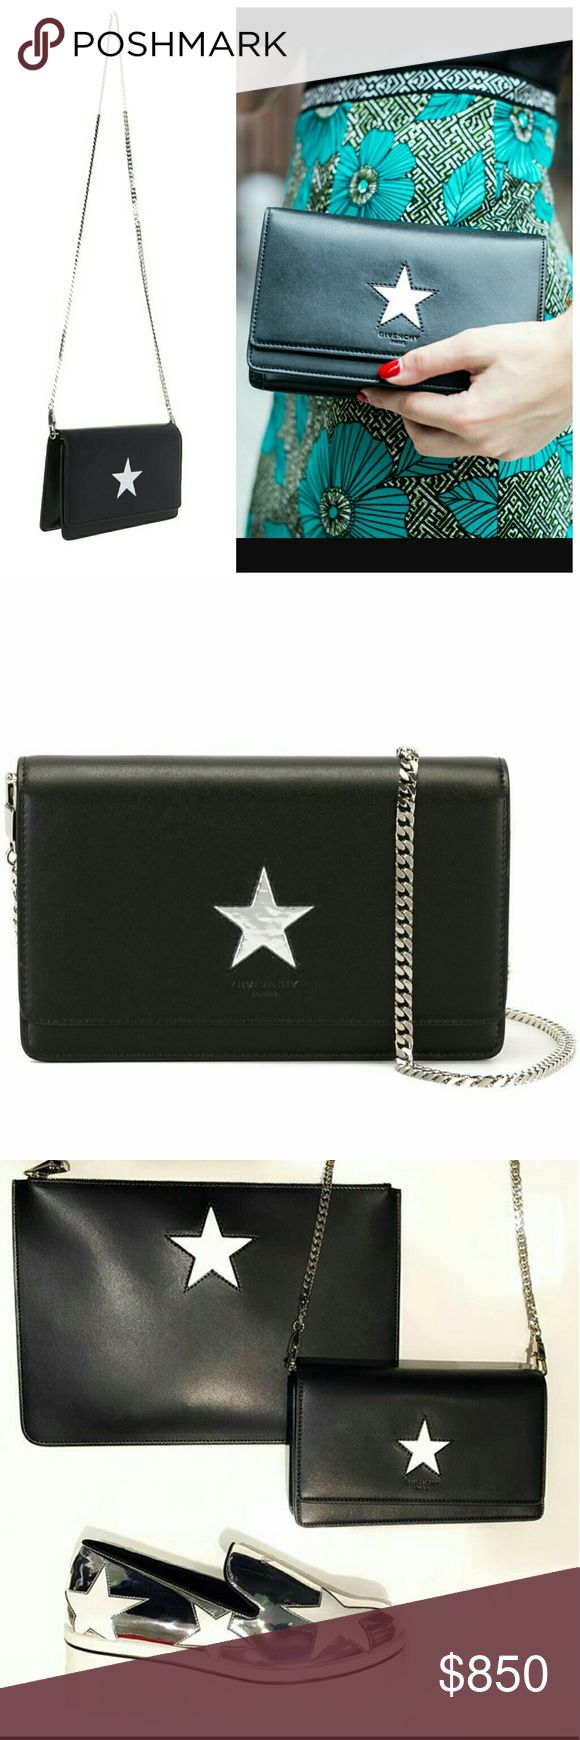 🎉SALE!🎉 Givenchy Pandora Star Wallet on Chain 💯 smooth calfskin black leather with silver star accent at front.  New, never worn, no defects.  Original duster, care card/tag included.  🚫Sold out!!🚫 💯 Authentic.  $1195+ tax retail.  Stock photos shown to display fit.  No Trades ✋ no Lowballers. Givenchy Bags Crossbody Bags